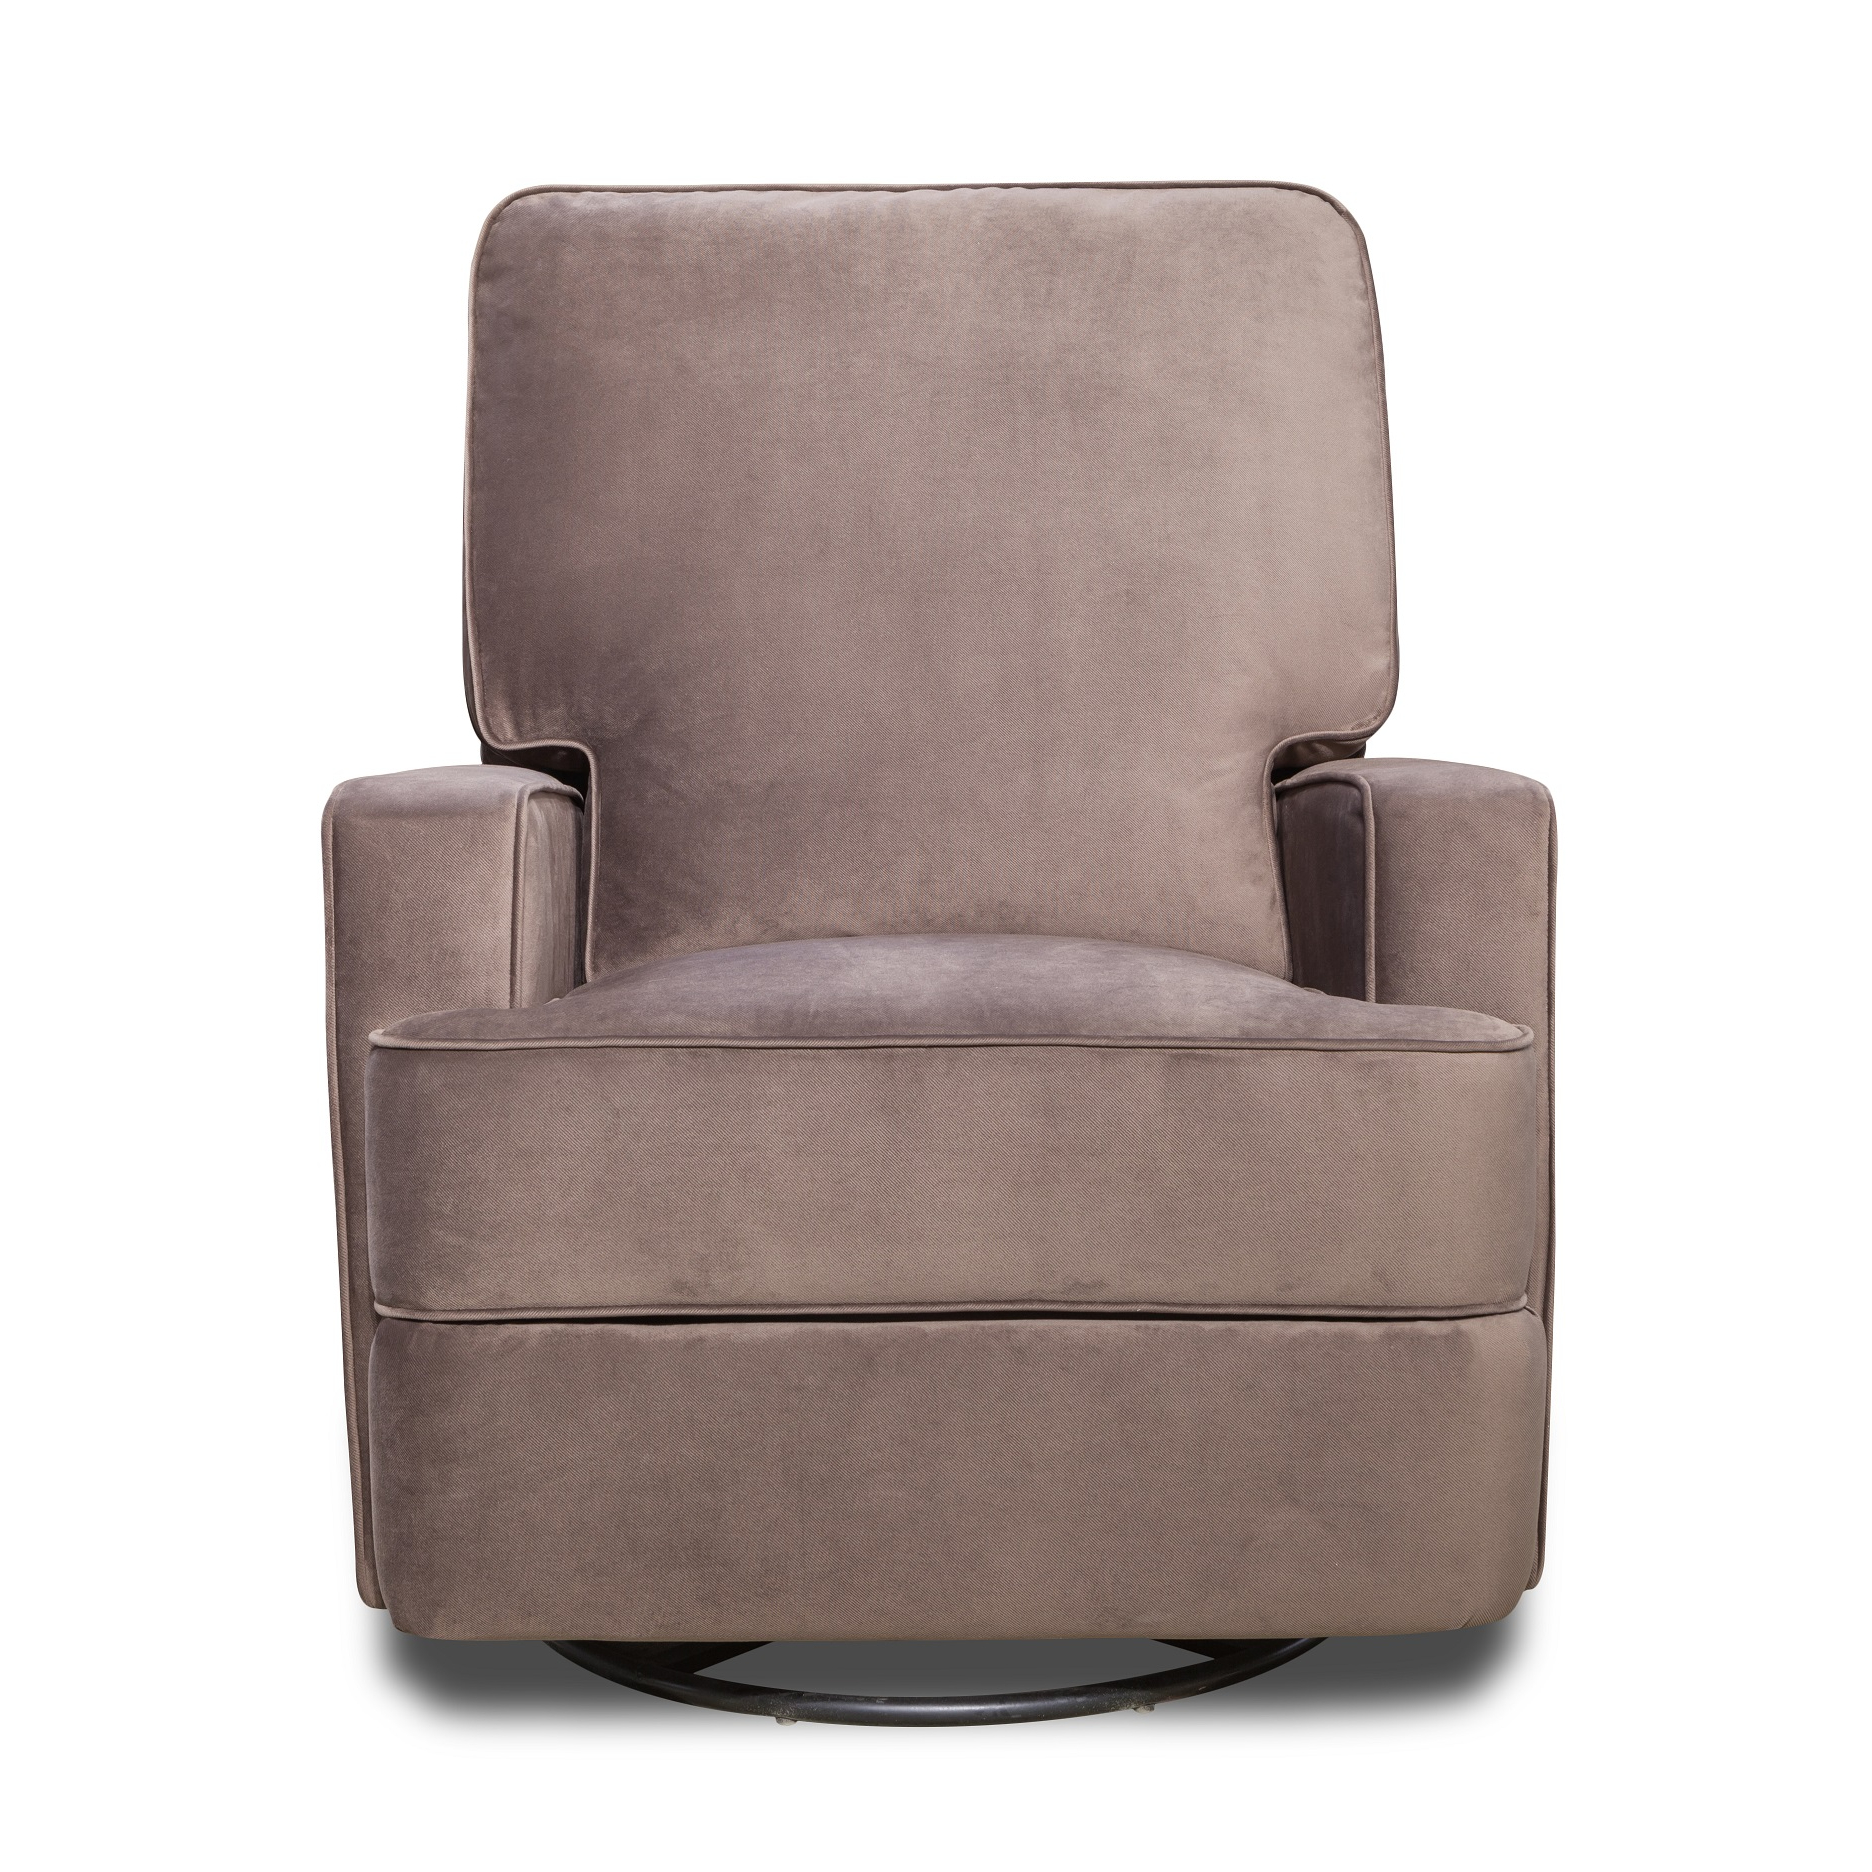 Hot Sell Simple Style Fabric Electric Recliner Sofa Chair